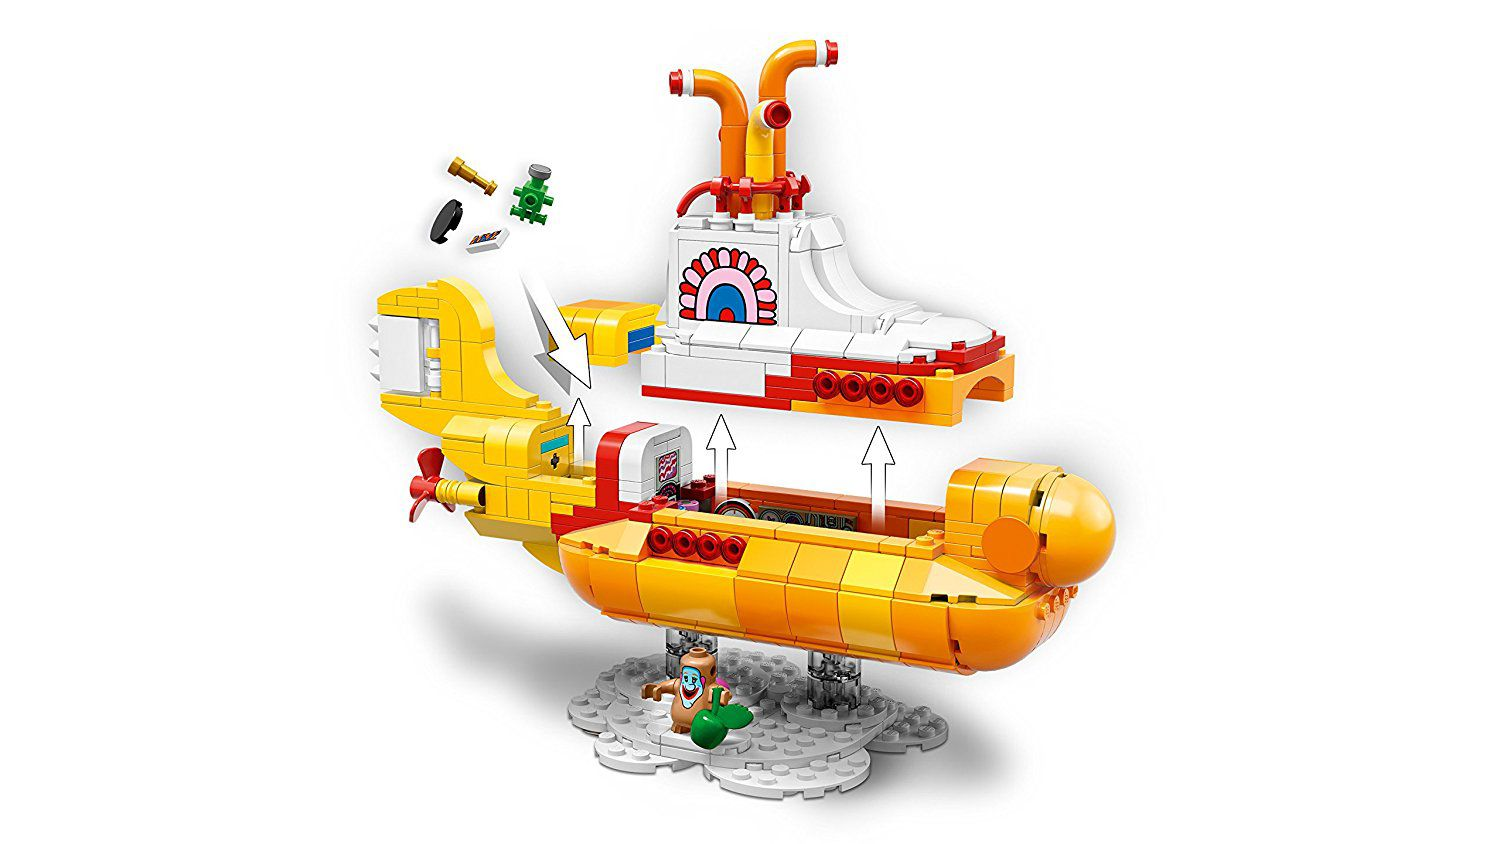 LEGO Ideas 21306 Yellow Submarine LEGO_21306_open.jpg